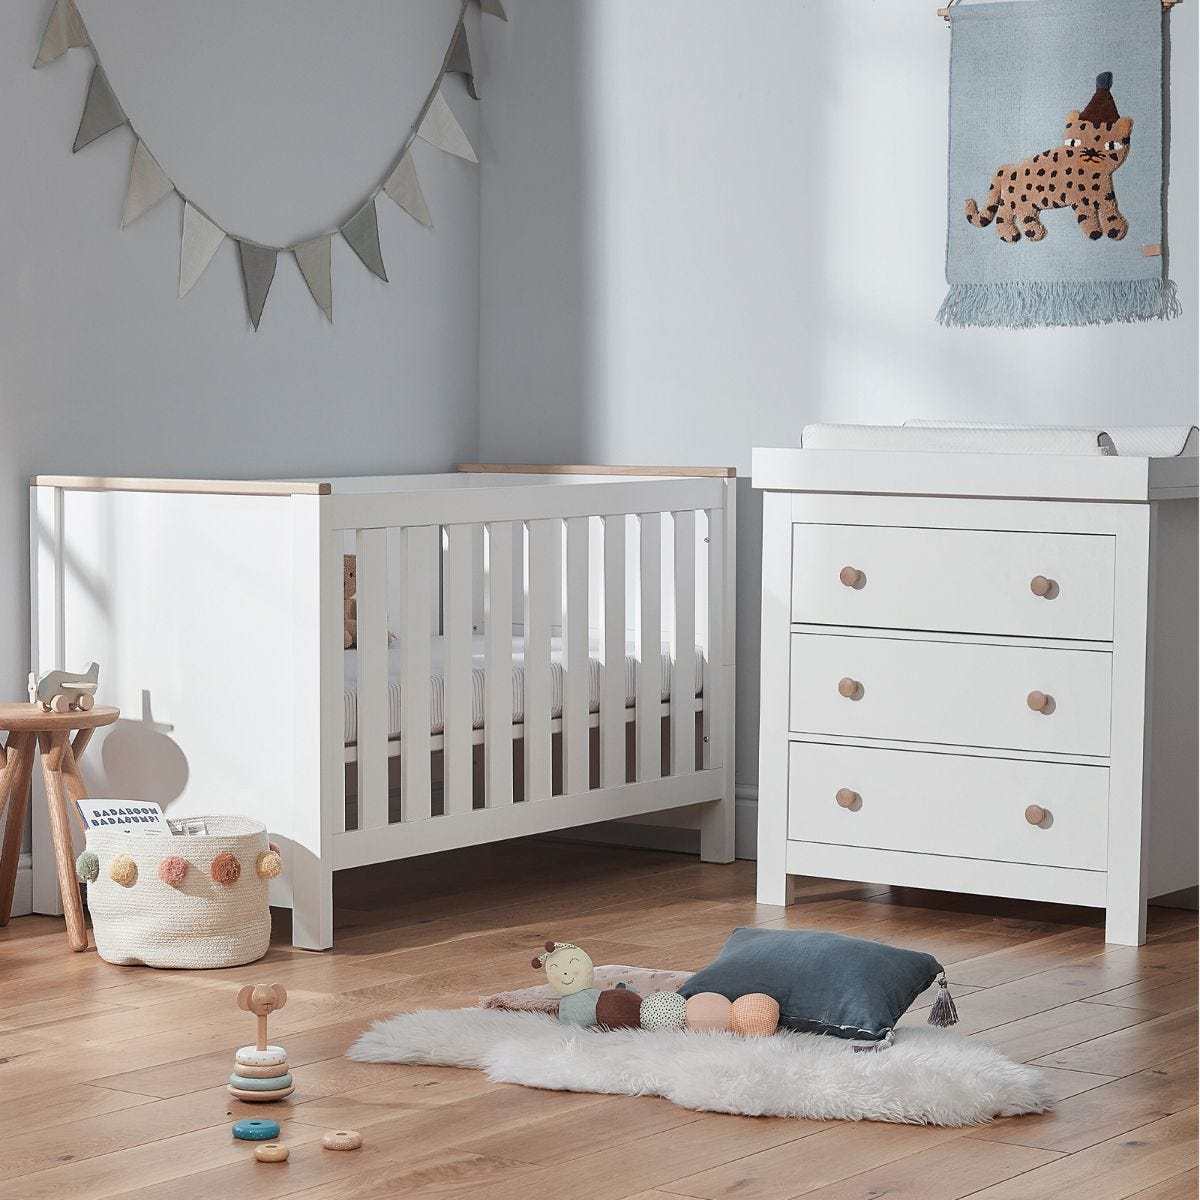 Cuddleco Aylesbury 2pc set 3 Drawer Dresser and Changer and Cot Bed White and Ash